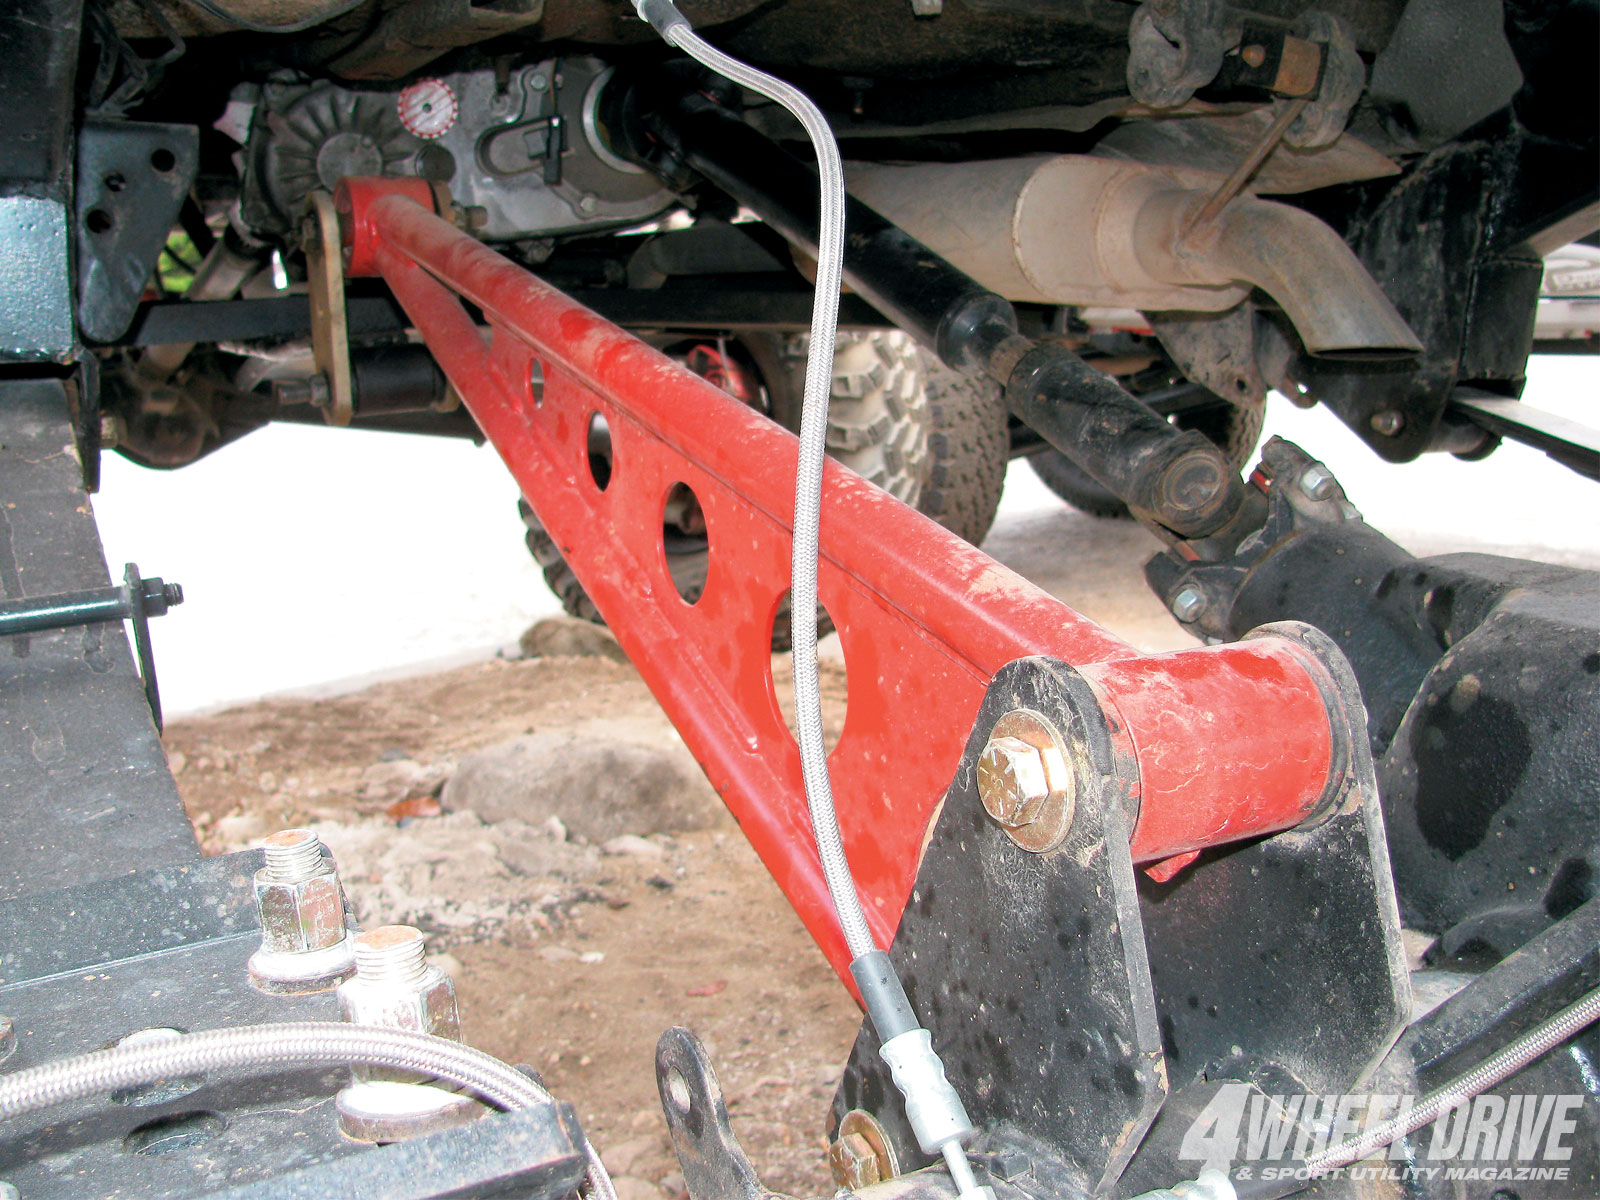 1102 4wd 07+4x4 suspension basics+axle wrap